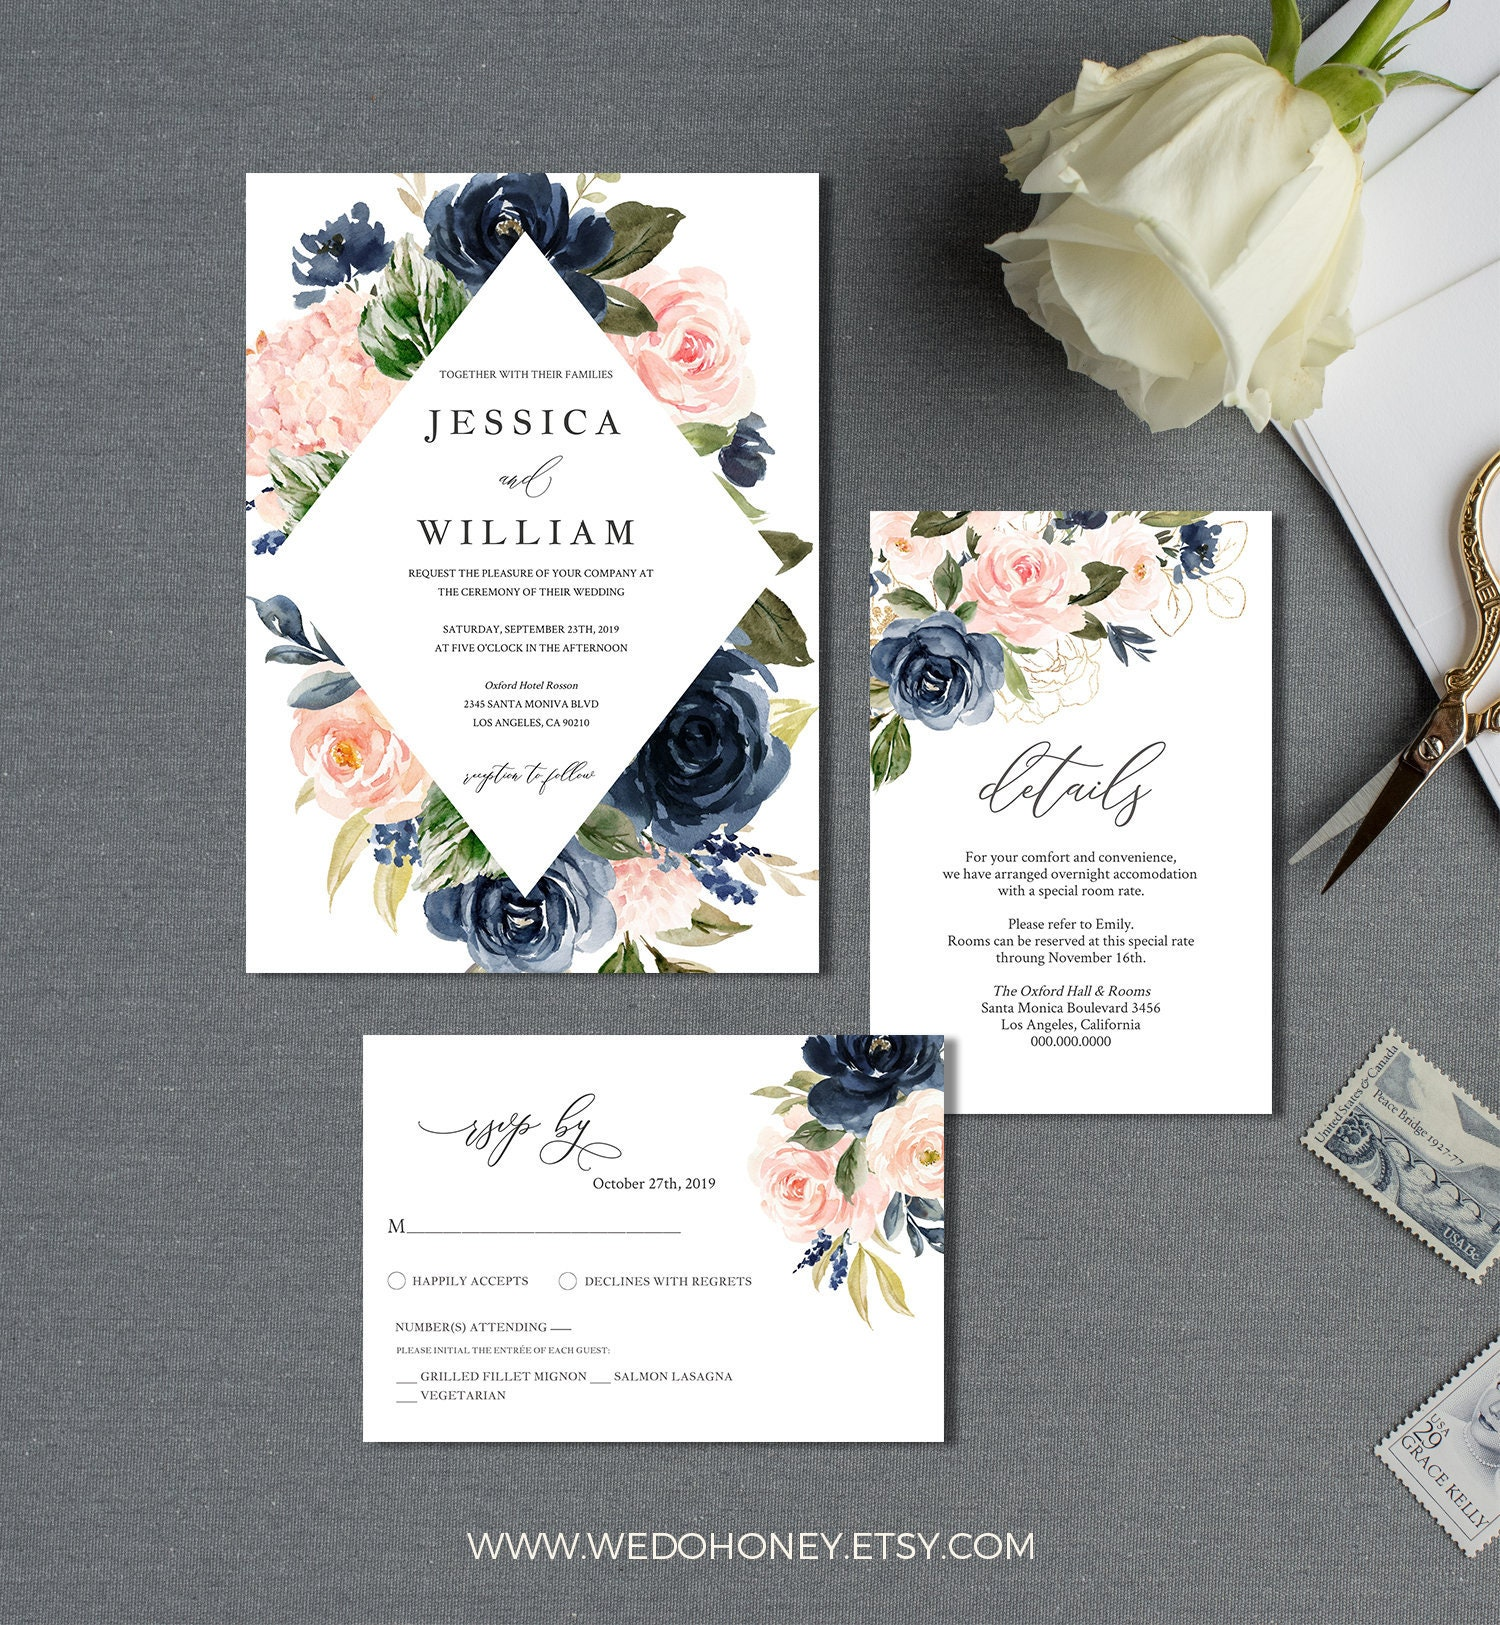 Blush and Navy Watercolor Wedding Invitation Suite, Template, Invite 5x7'', Details 4x6'' and 5X3.5'', RSVP 5x3.5 #021